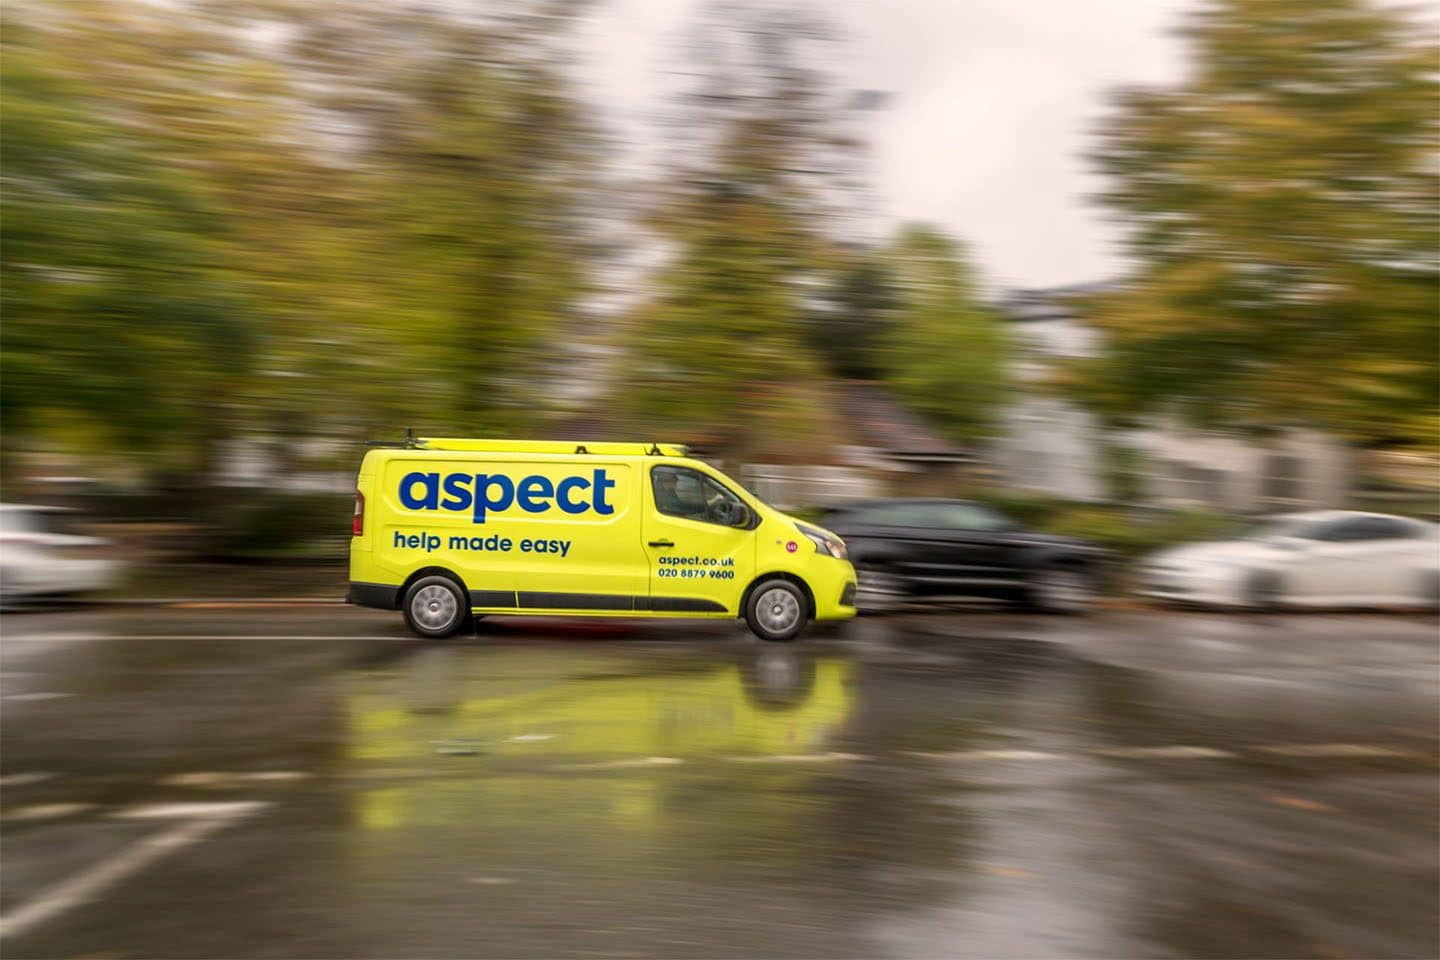 Aspect Property Maintenance